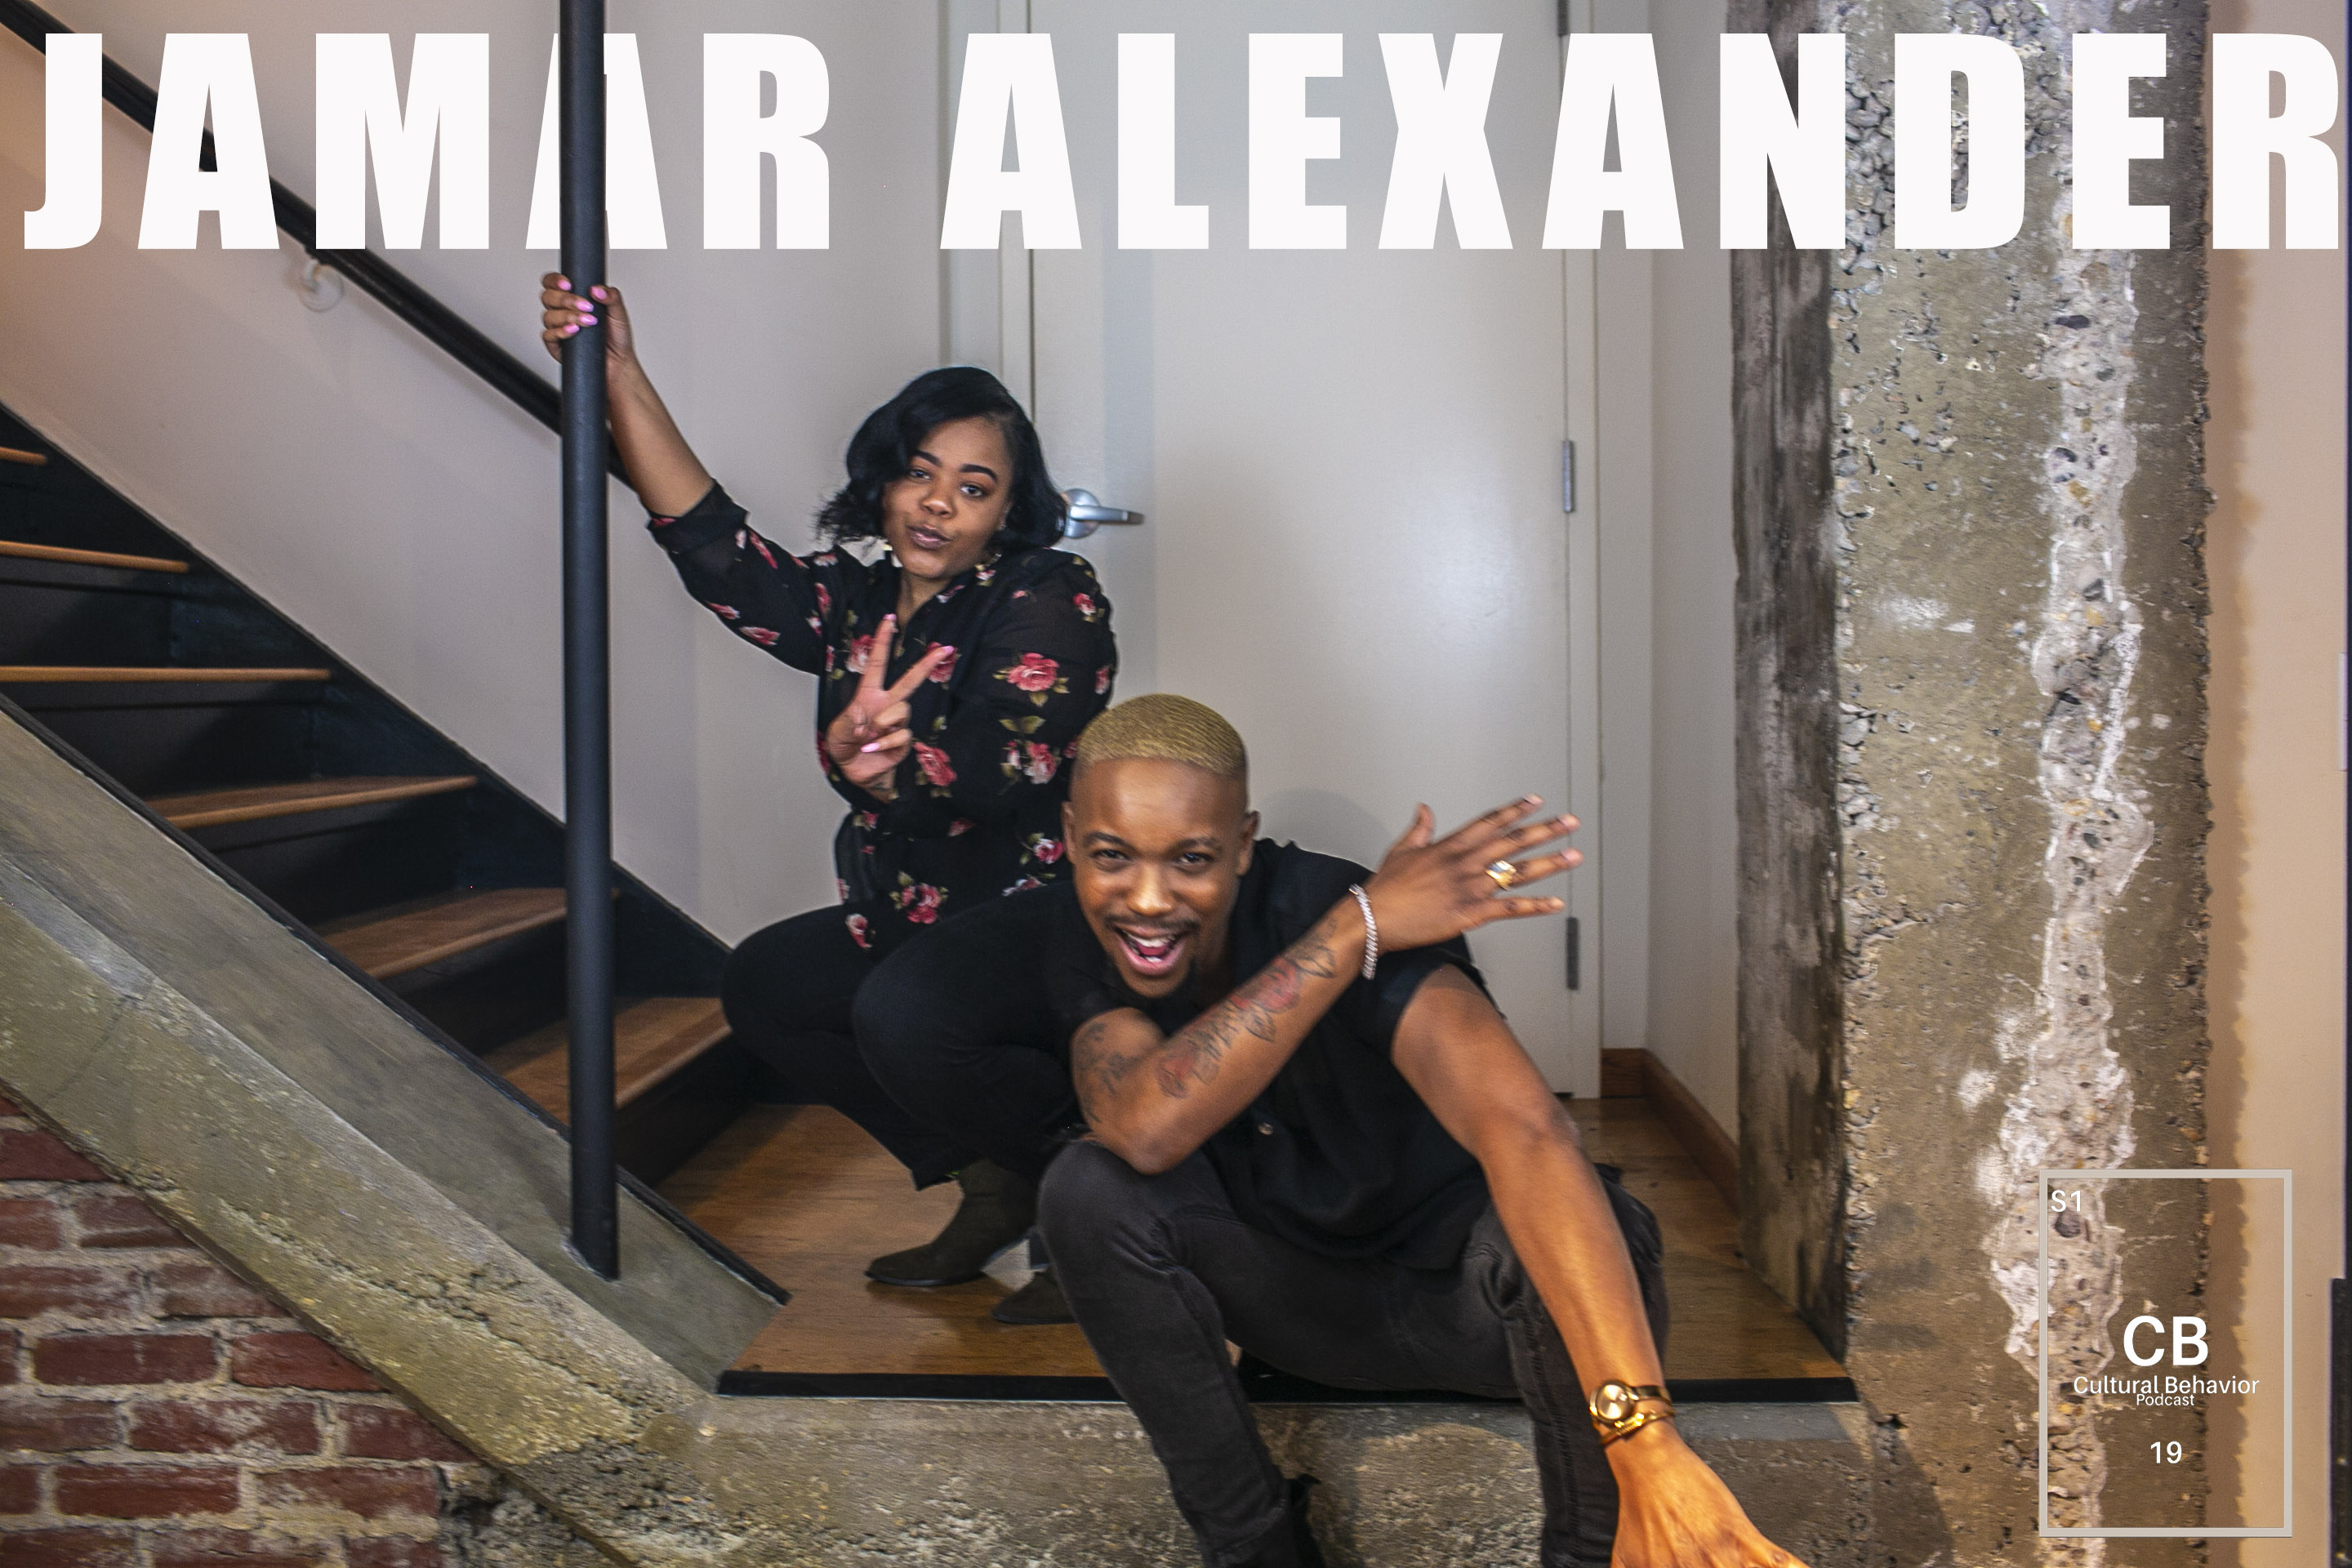 jamar_alexander_interview